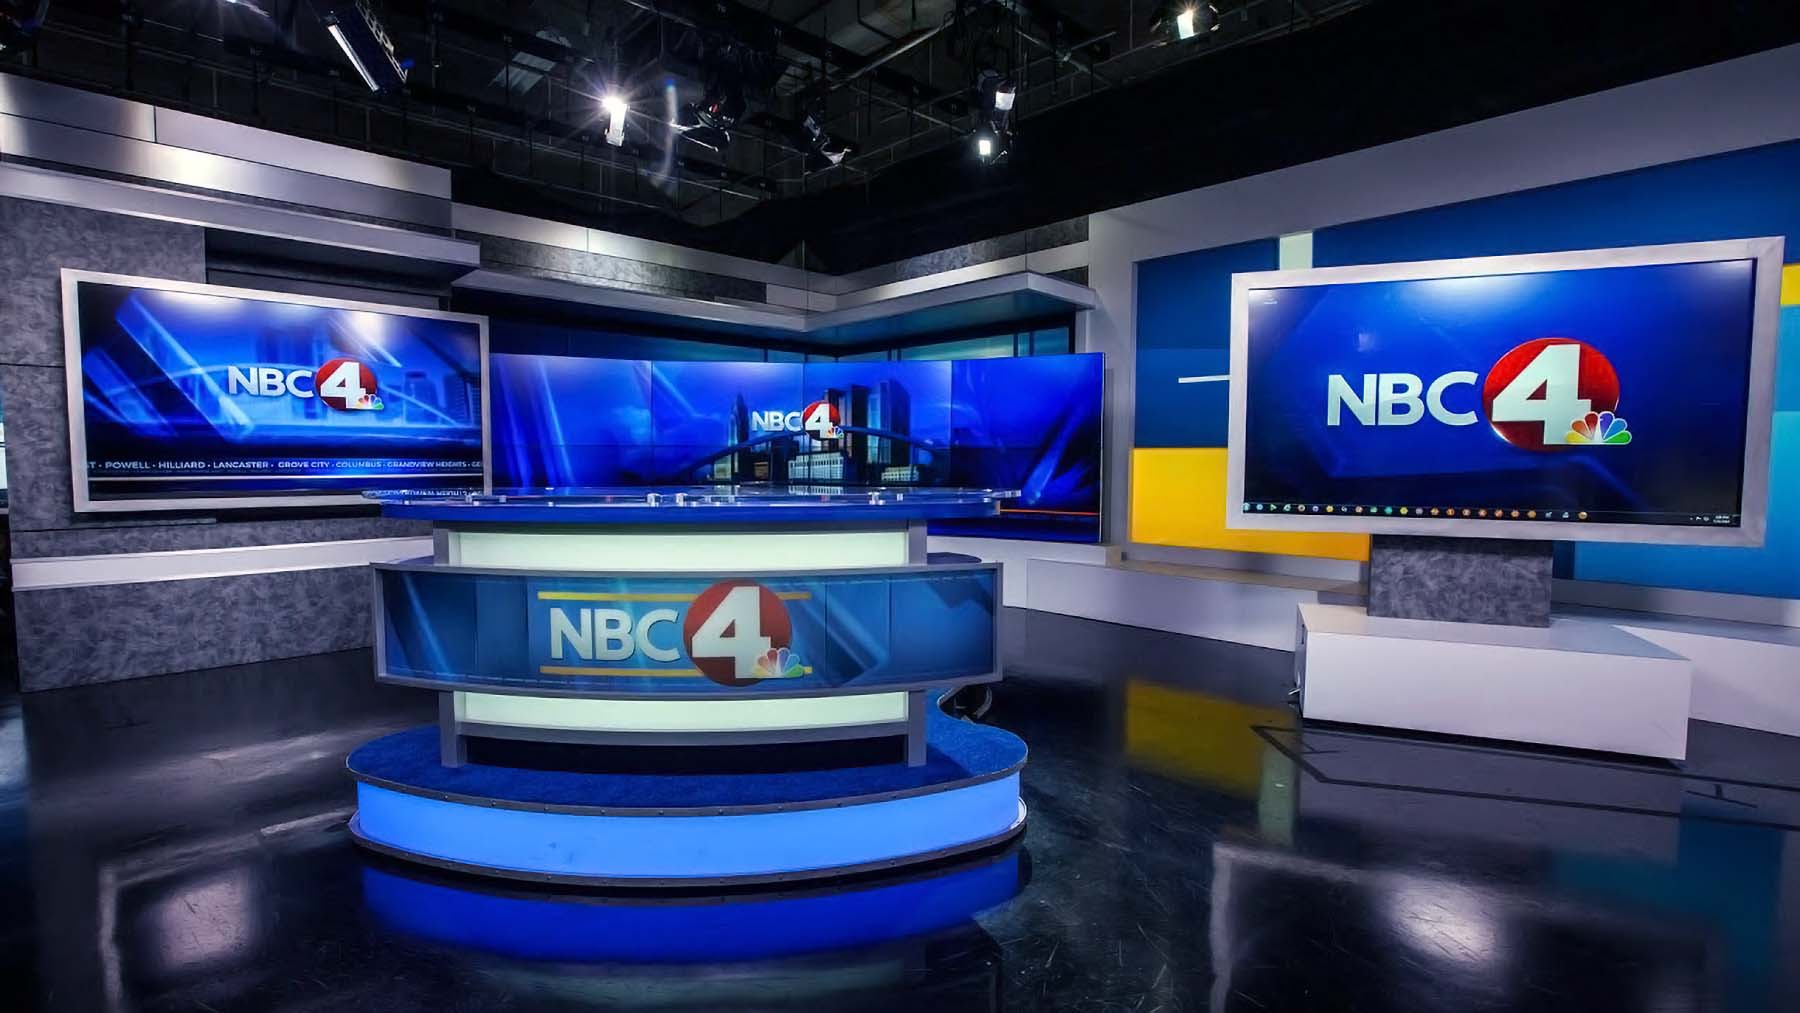 NBC 4 Washington studio